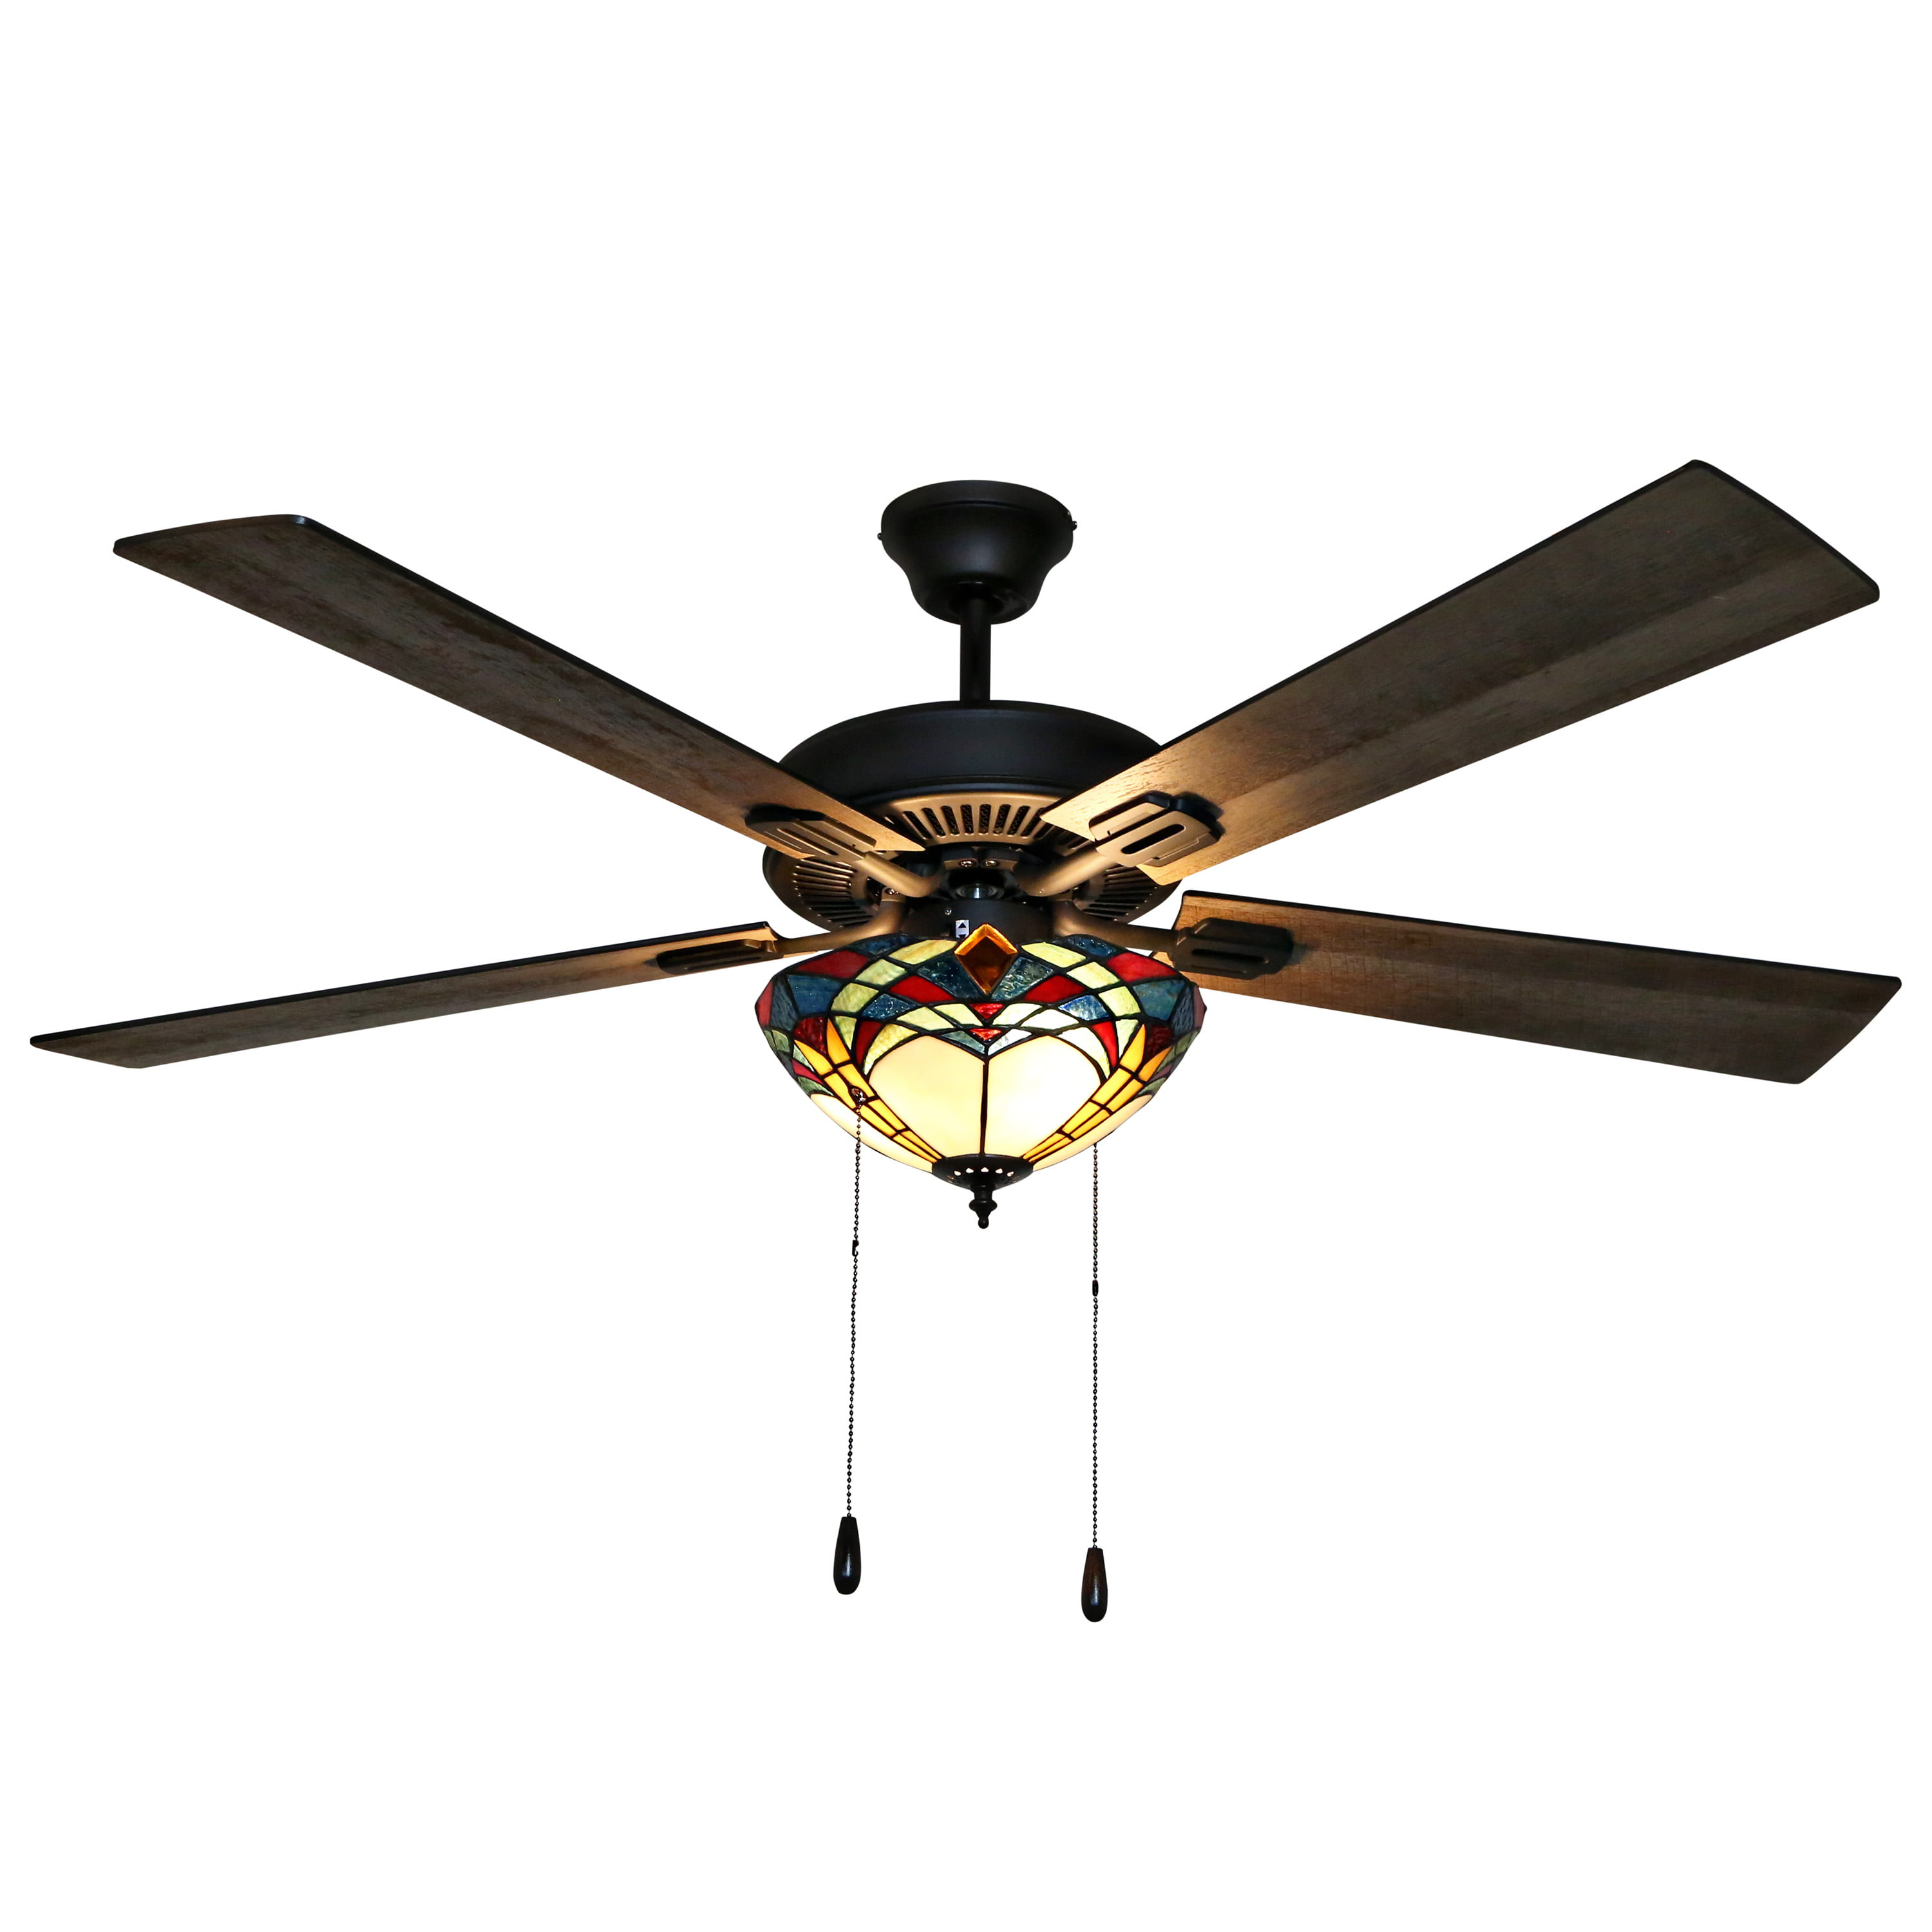 Home Decorators Ceiling Fan 23 in Rustic Bronze Outdoor 3-Blades LED Light Kit